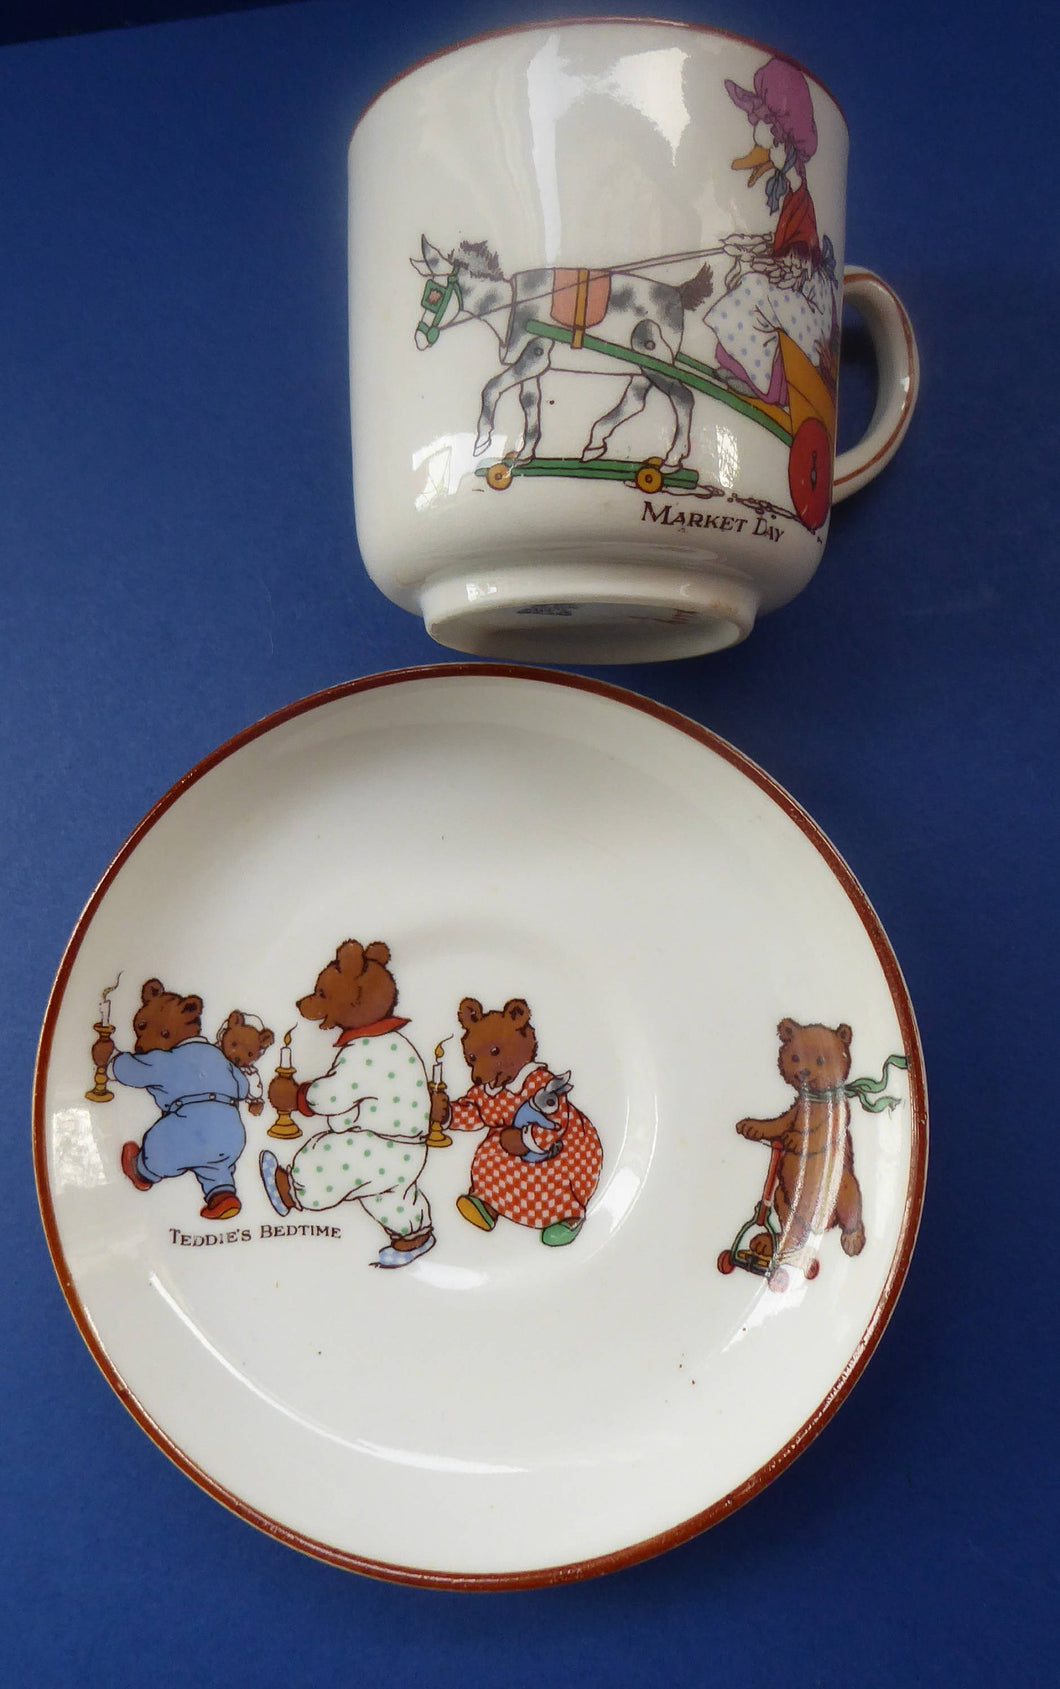 RARE 1920s NURSERY Ware: Paragon China Cup and Saucer. Teddie's Bedtime and Market Day